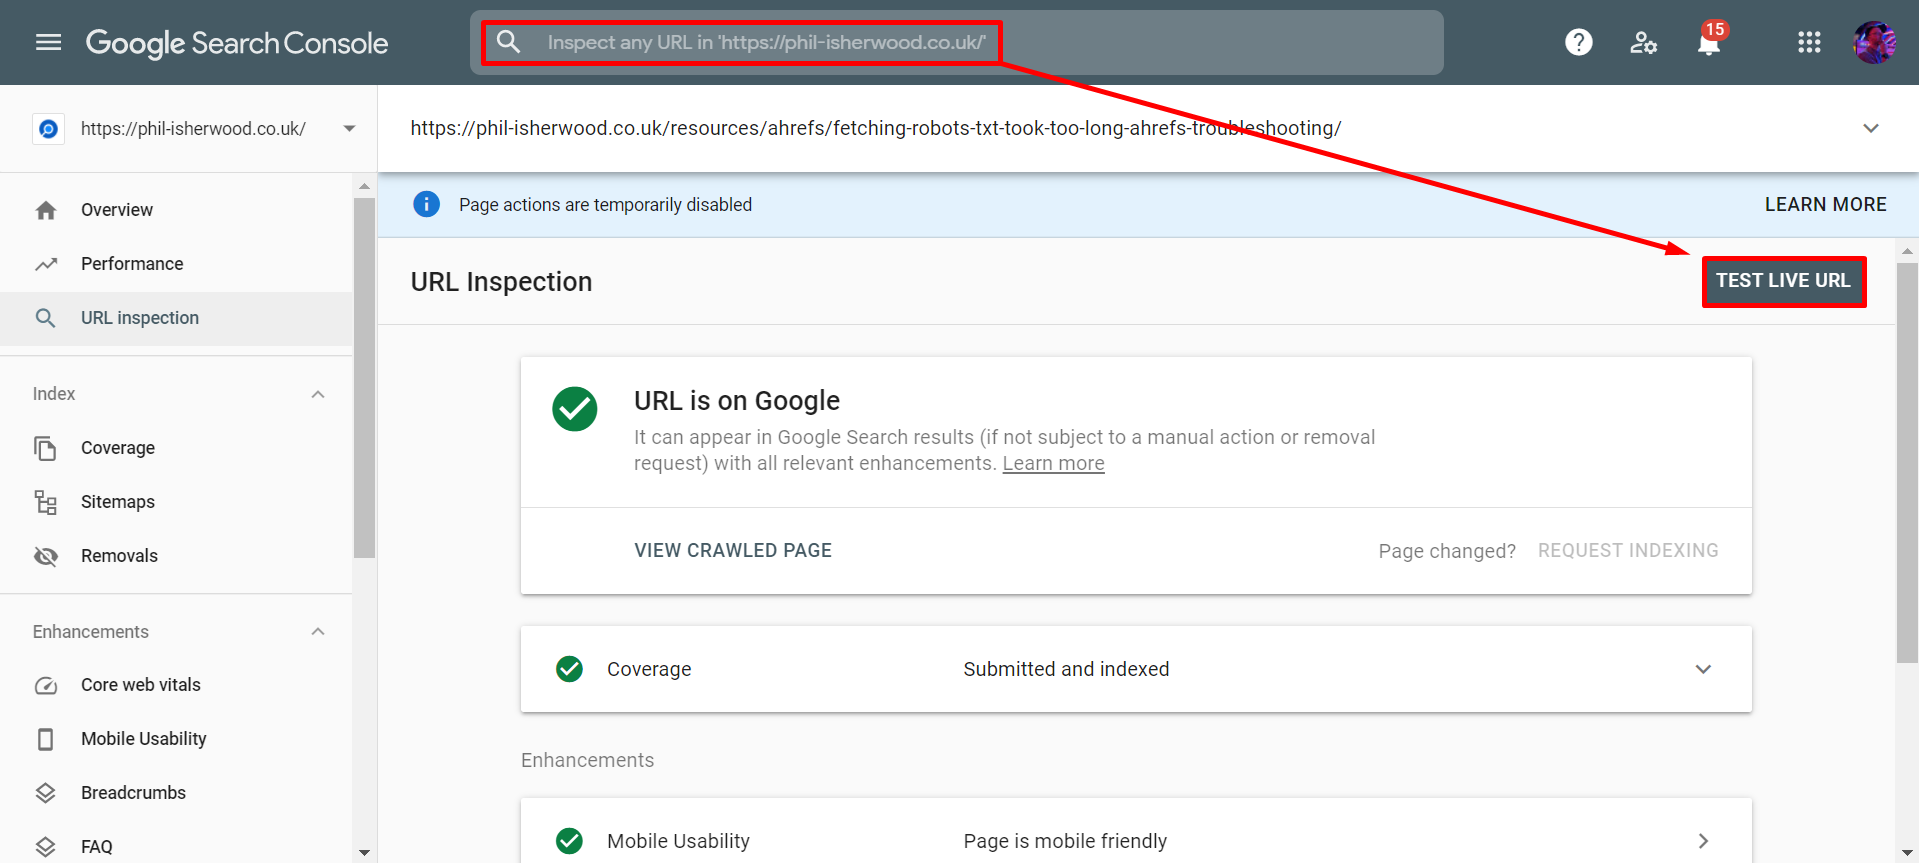 Test Live URL with Google Search Console